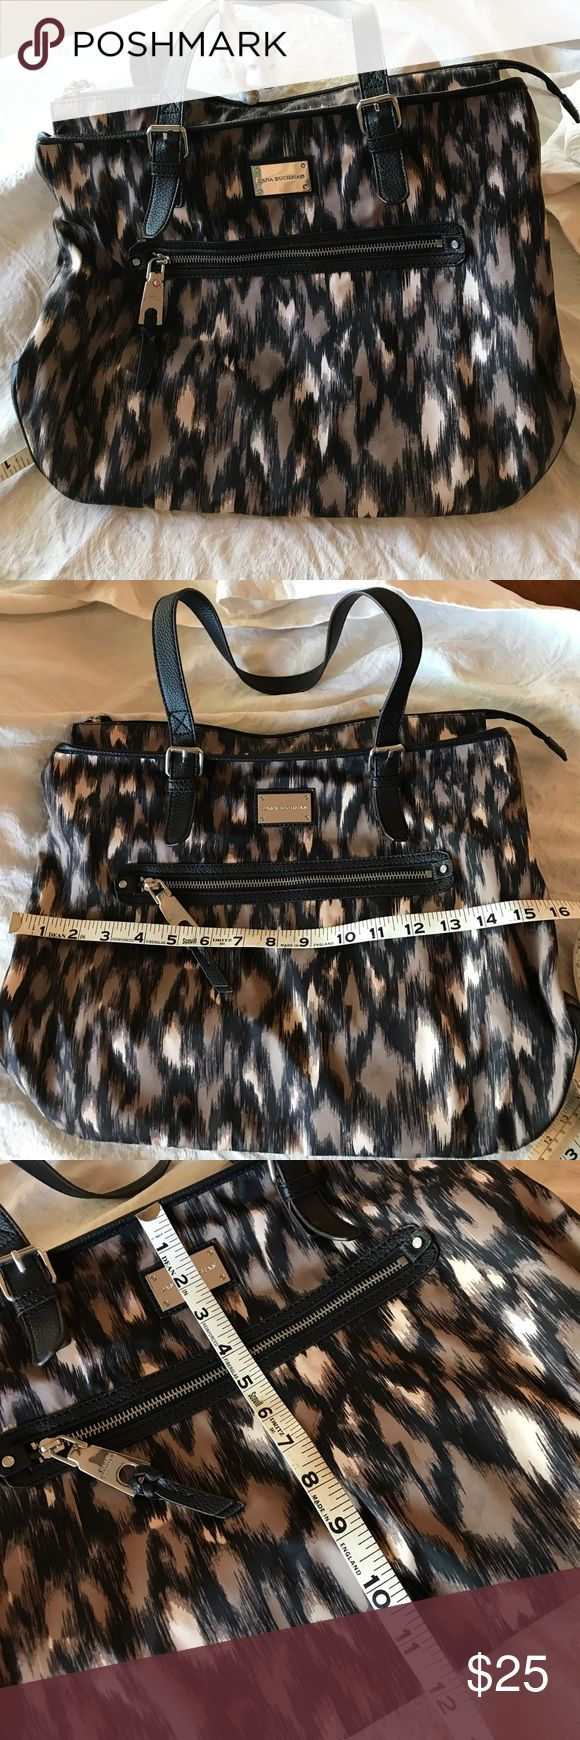 Dana Buchanan shoulder bag Like new, used only a few times. Nylon and leather, a great neutral and lightweight so you can load it up! The inside is a bronze color so you an actually find stuff. Dana Buchman Bags Shoulder Bags